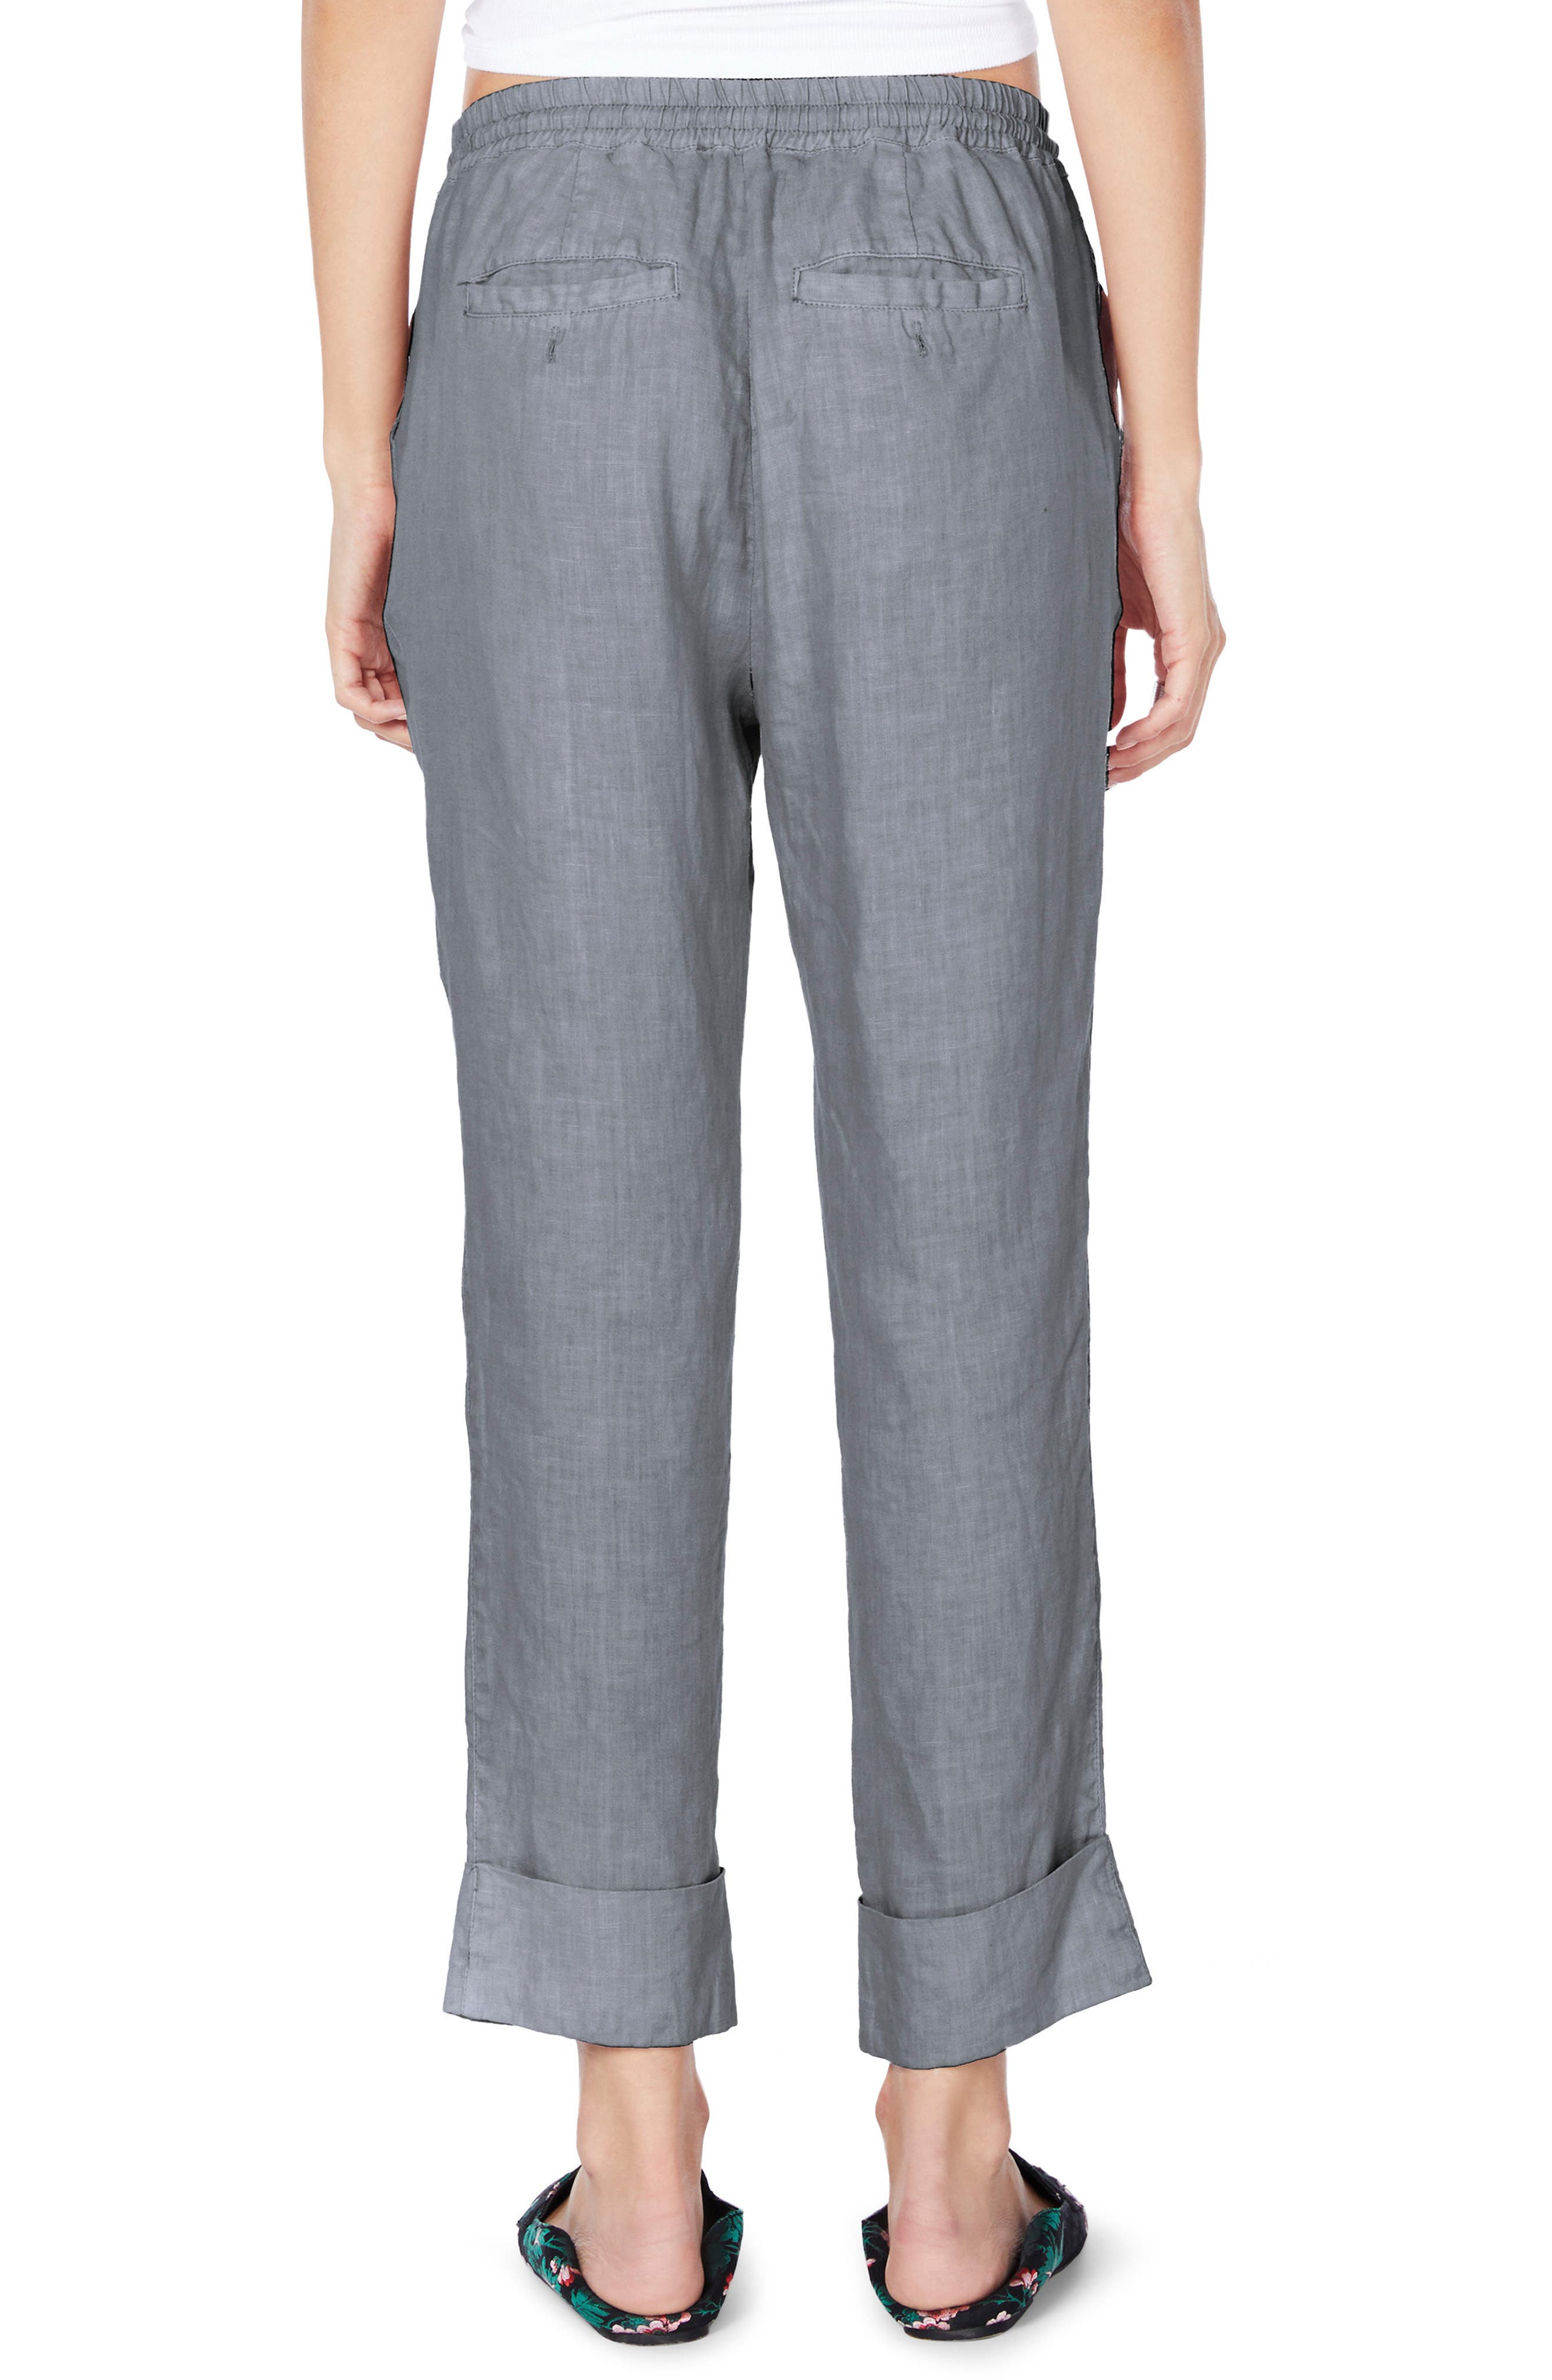 Cuffed Linen Pants,                             Alternate thumbnail 2, color,                             050